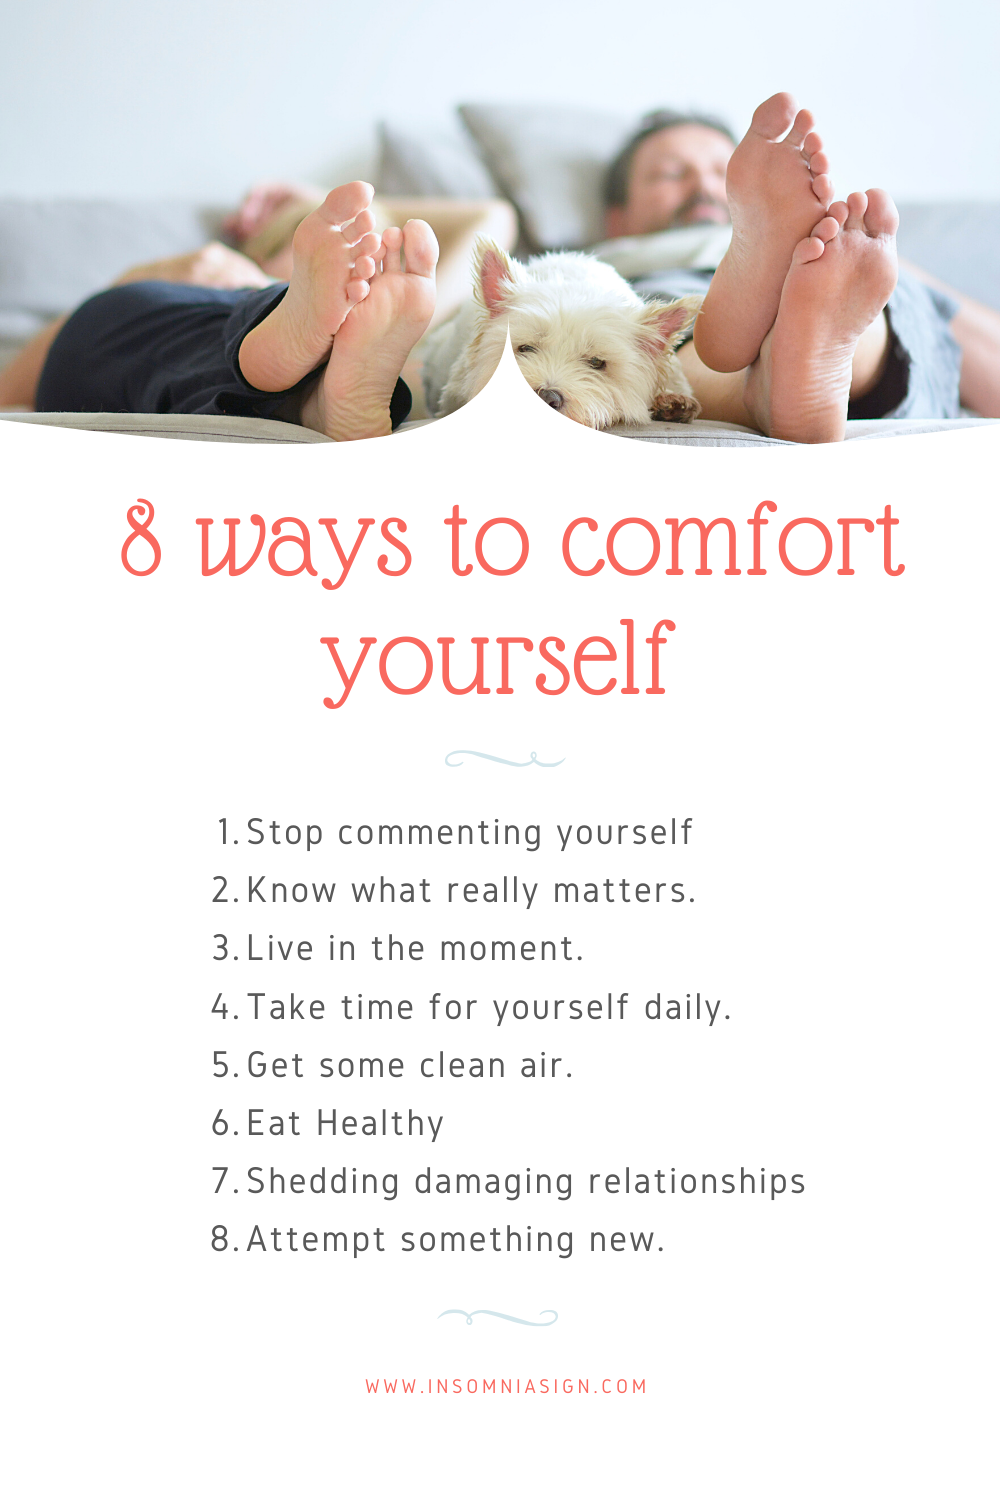 How do you comfort yourself